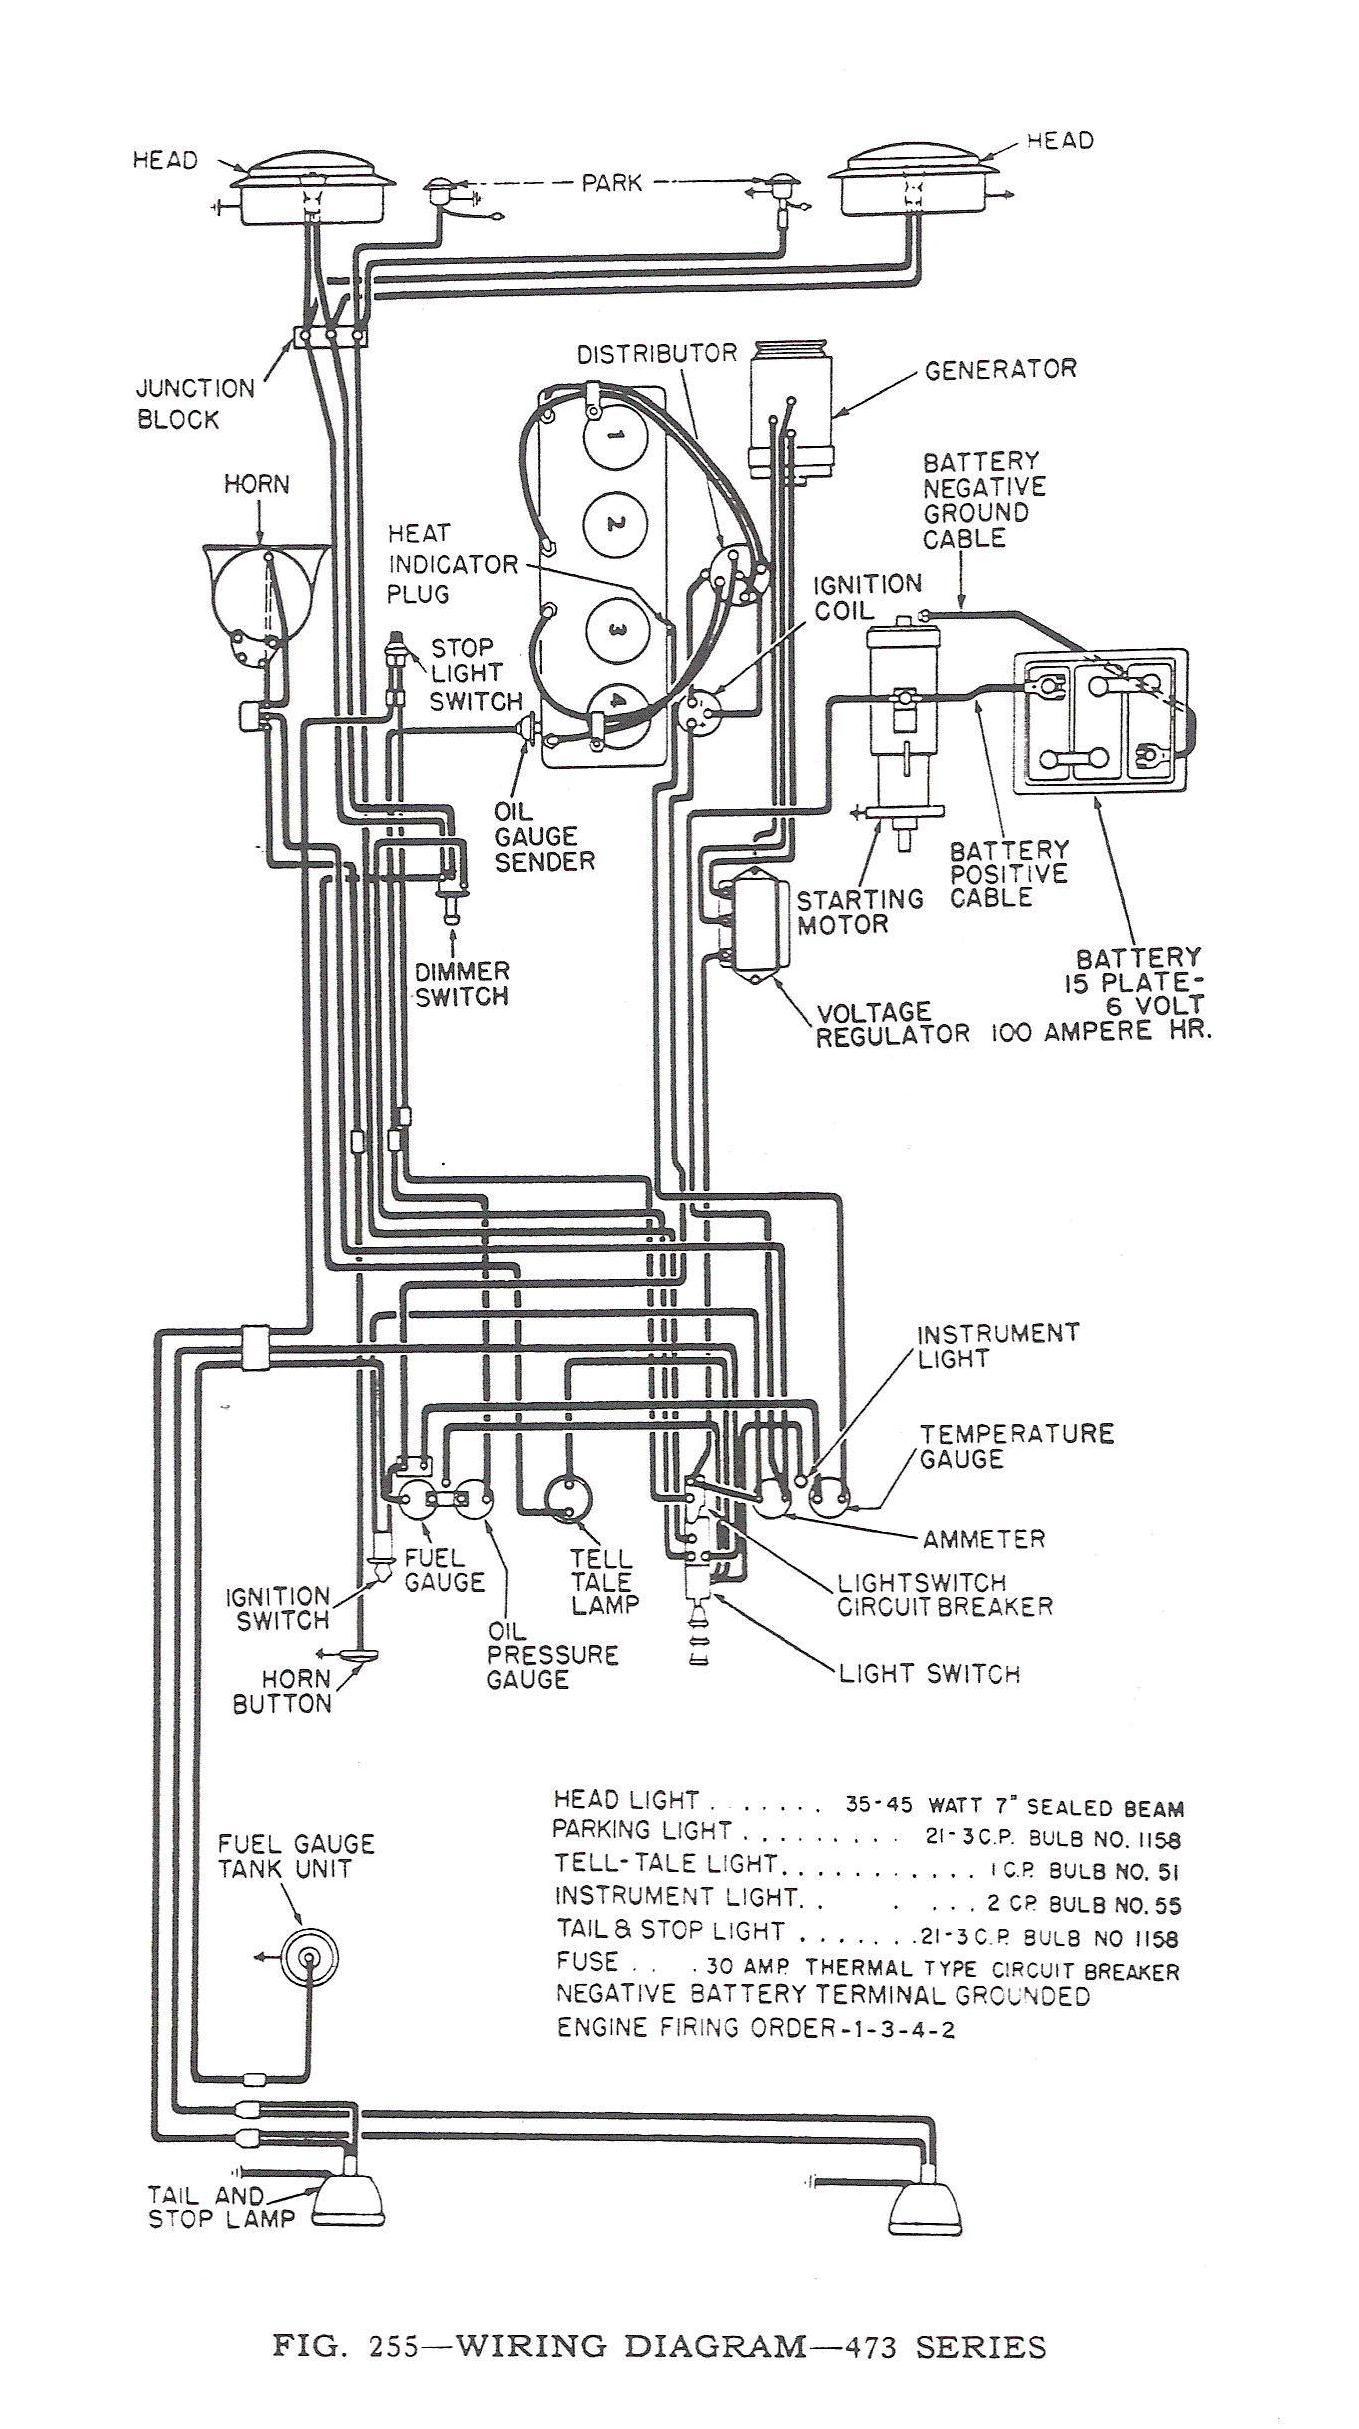 1952 Jeep Series 473 Wiring Diagrams